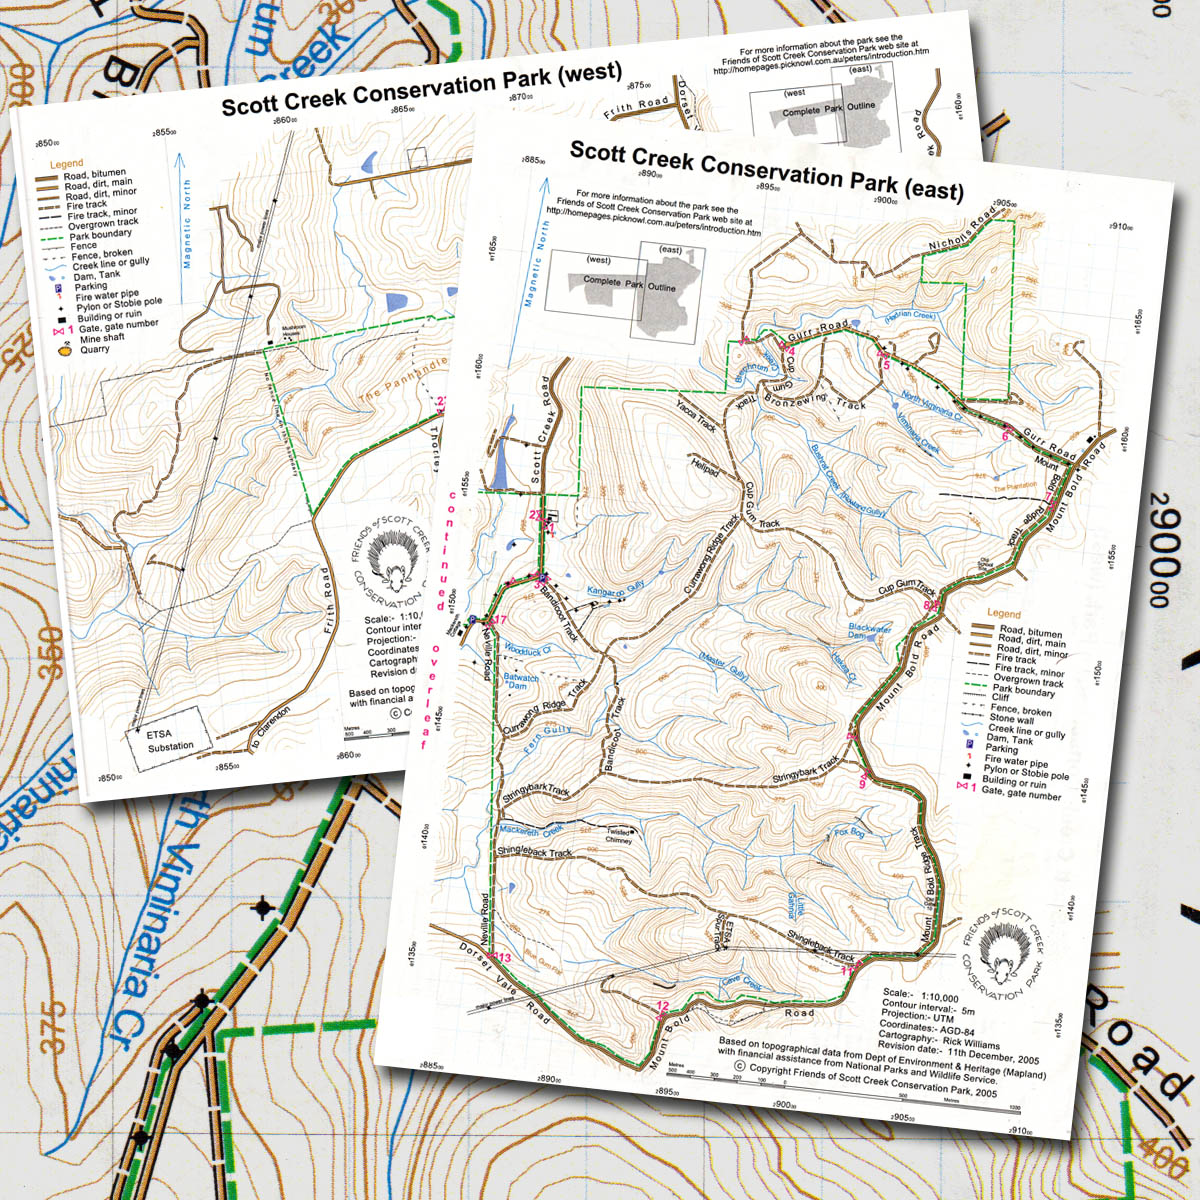 Scott Creek Conservation Park topographic map The Friends of the